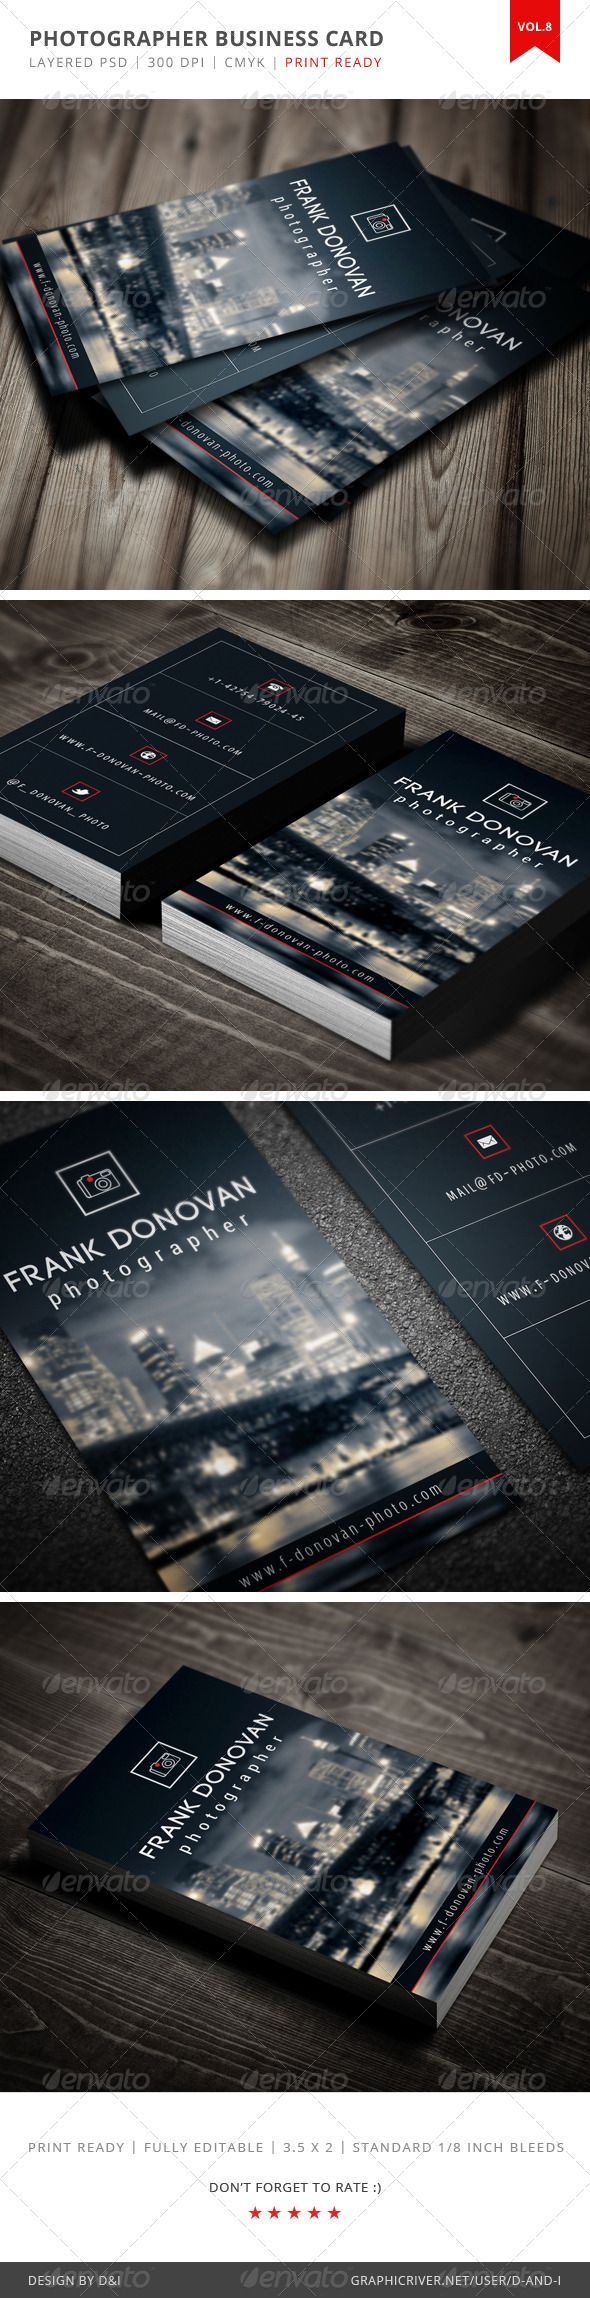 27660 best business cards images on pinterest corporate identity photographer business card vol8 creative business cards magicingreecefo Images